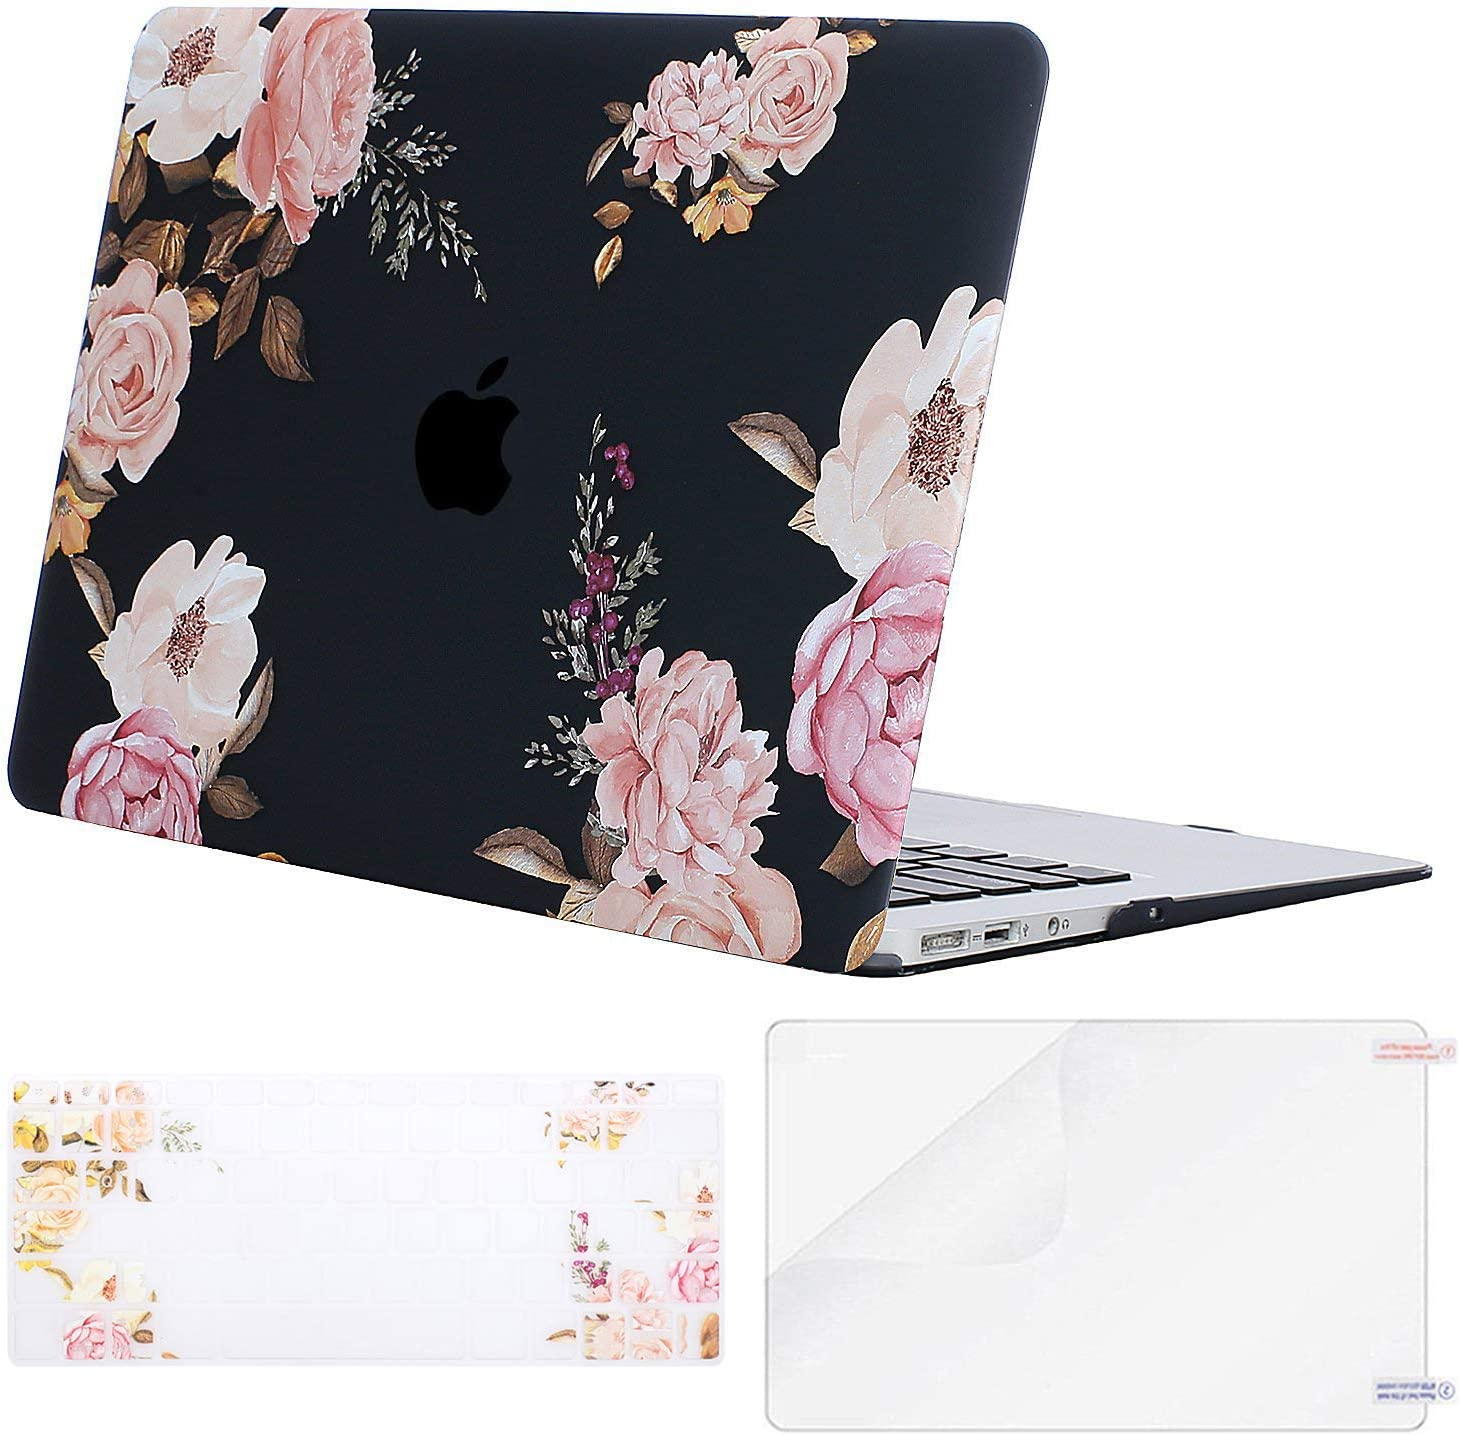 MOSISO MacBook Air 11 inch Case (Models: A1370 & A1465), Plastic Peony Hard Shell Case & Keyboard Cover & Screen Protector Compatible with MacBook Air 11 inch, Black